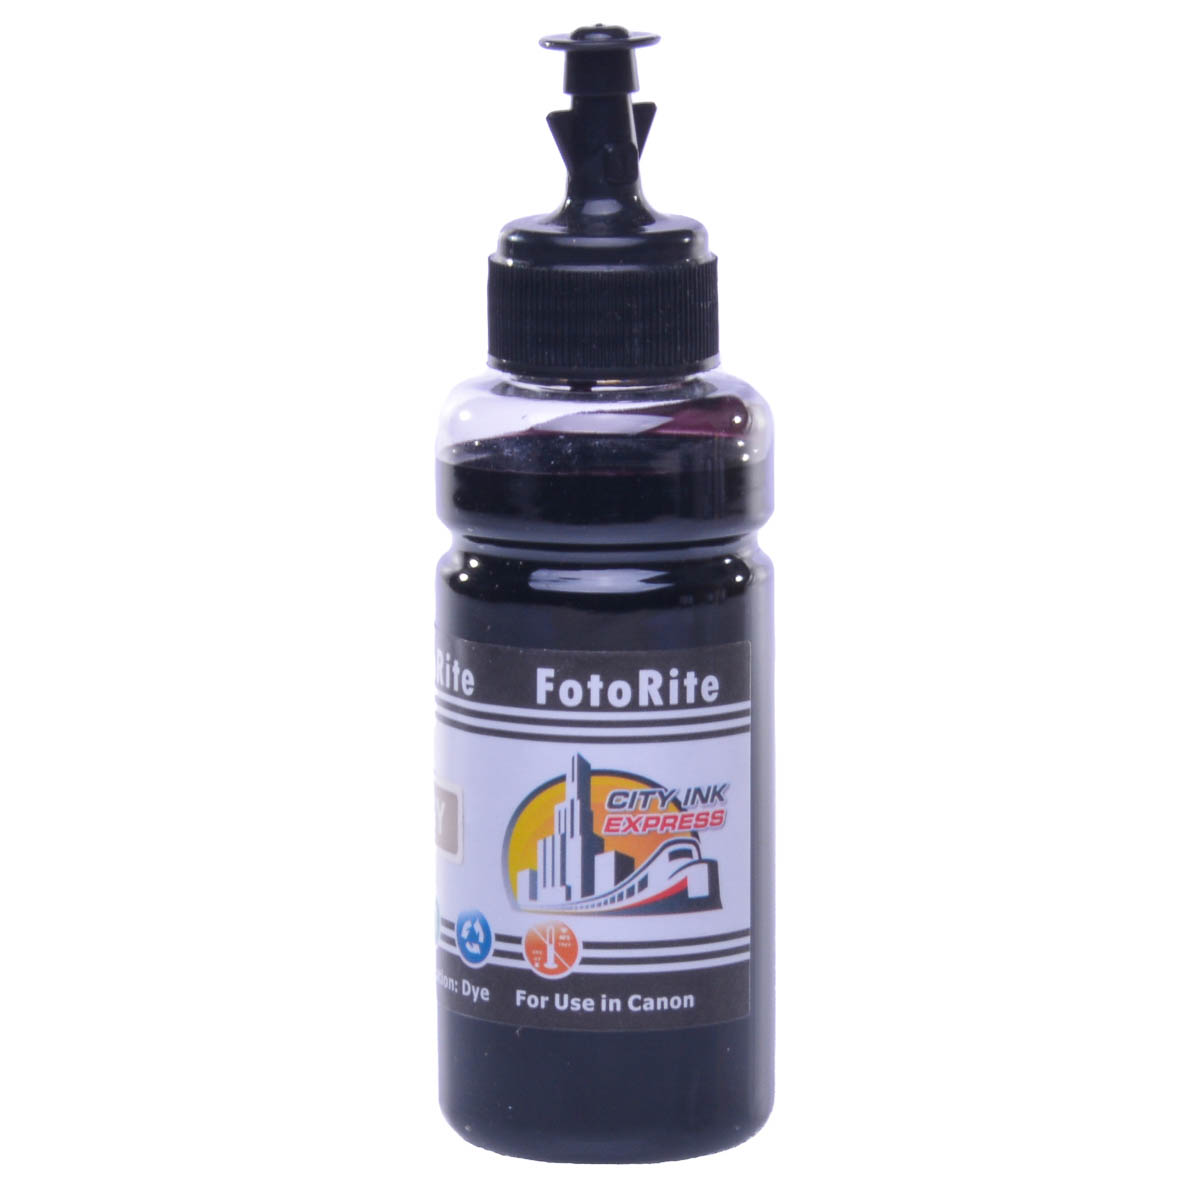 Cheap Grey dye ink replaces Canon Pixma MG8150 - CLI-526G